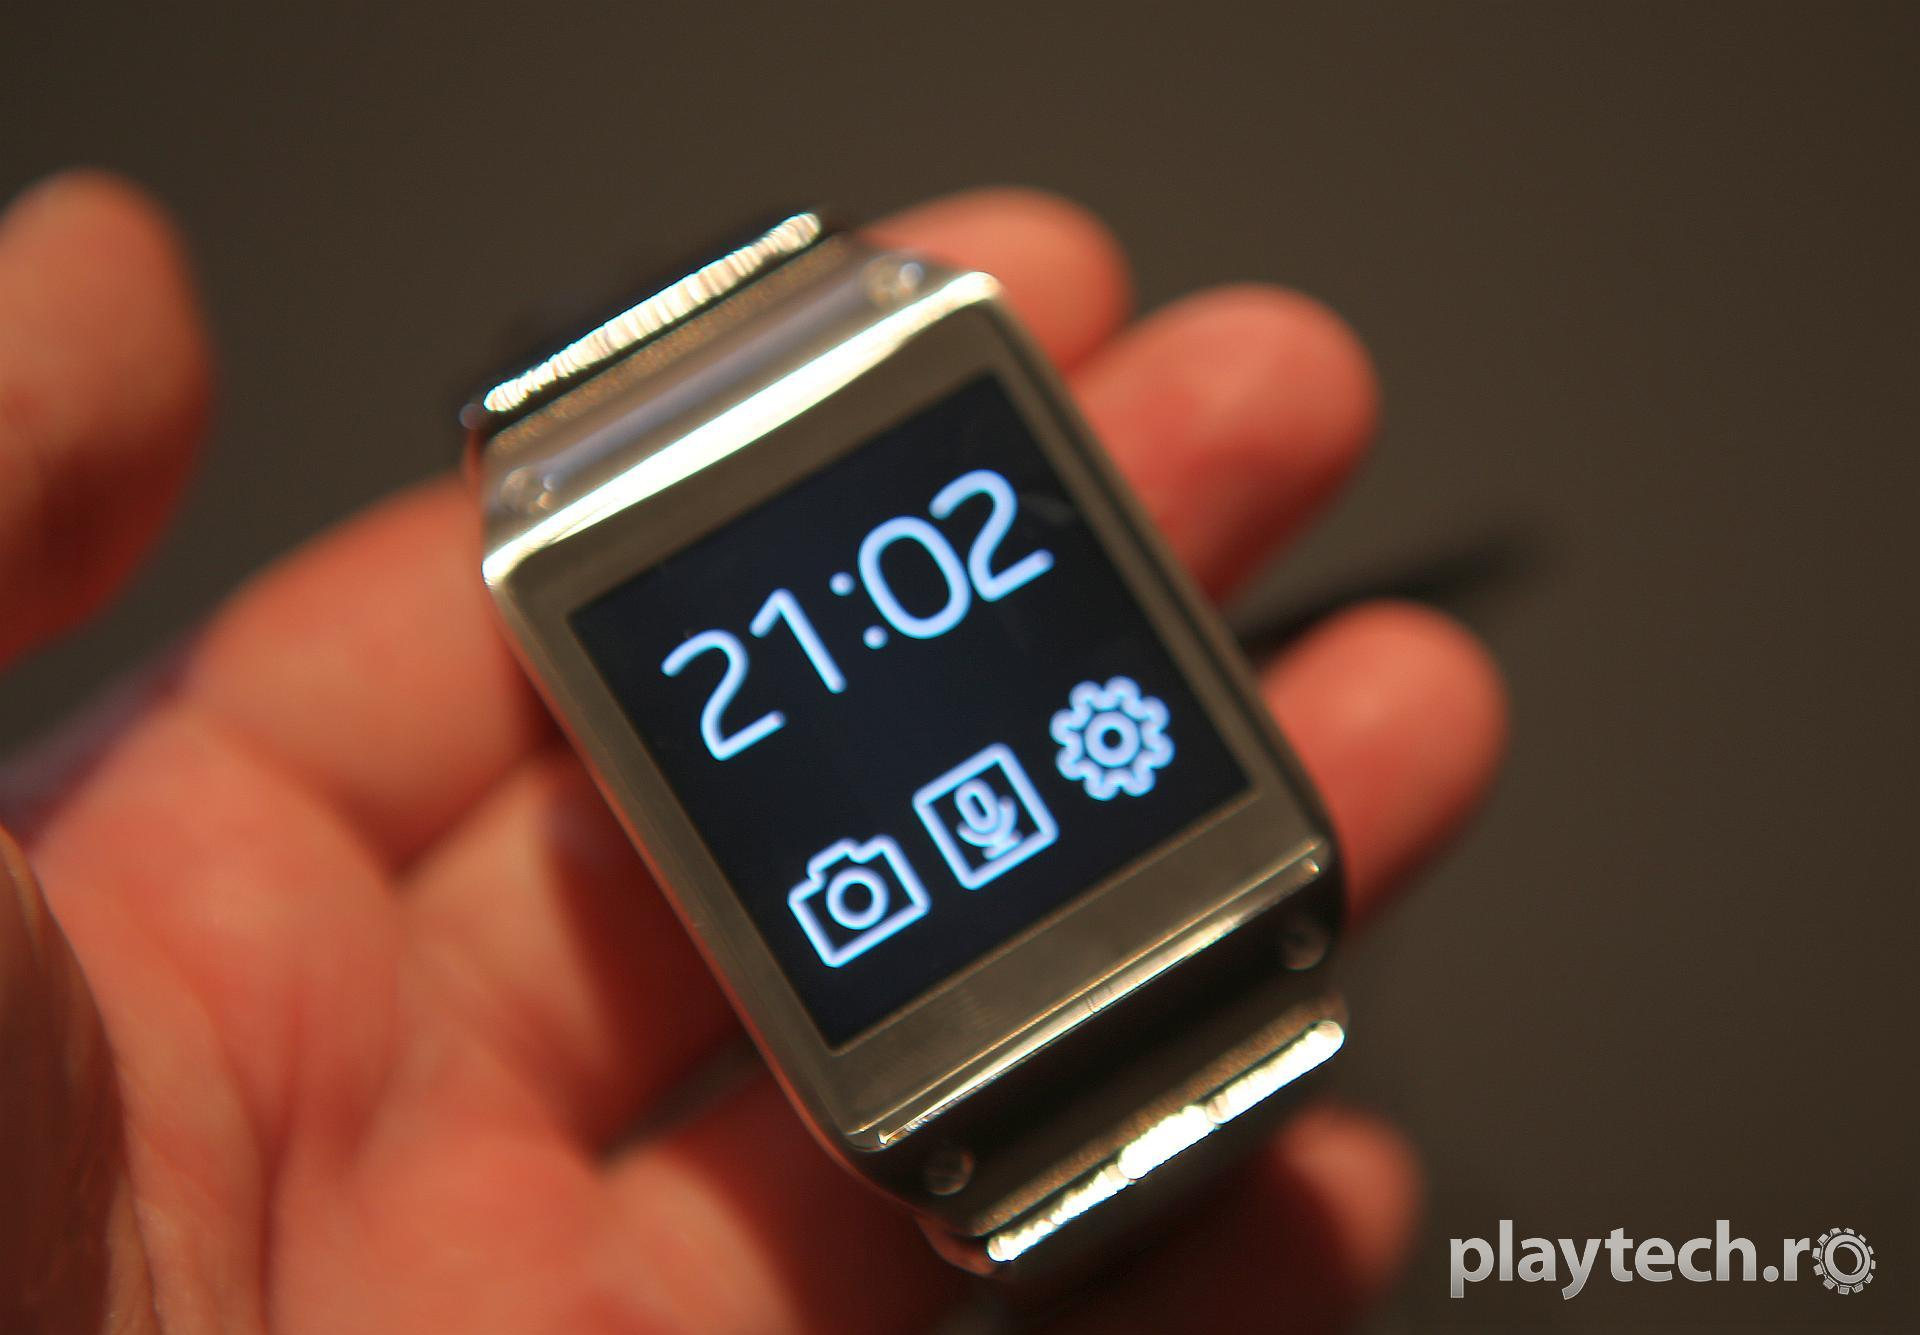 IFA 2013: Samsung Galaxy Gear Hands-On